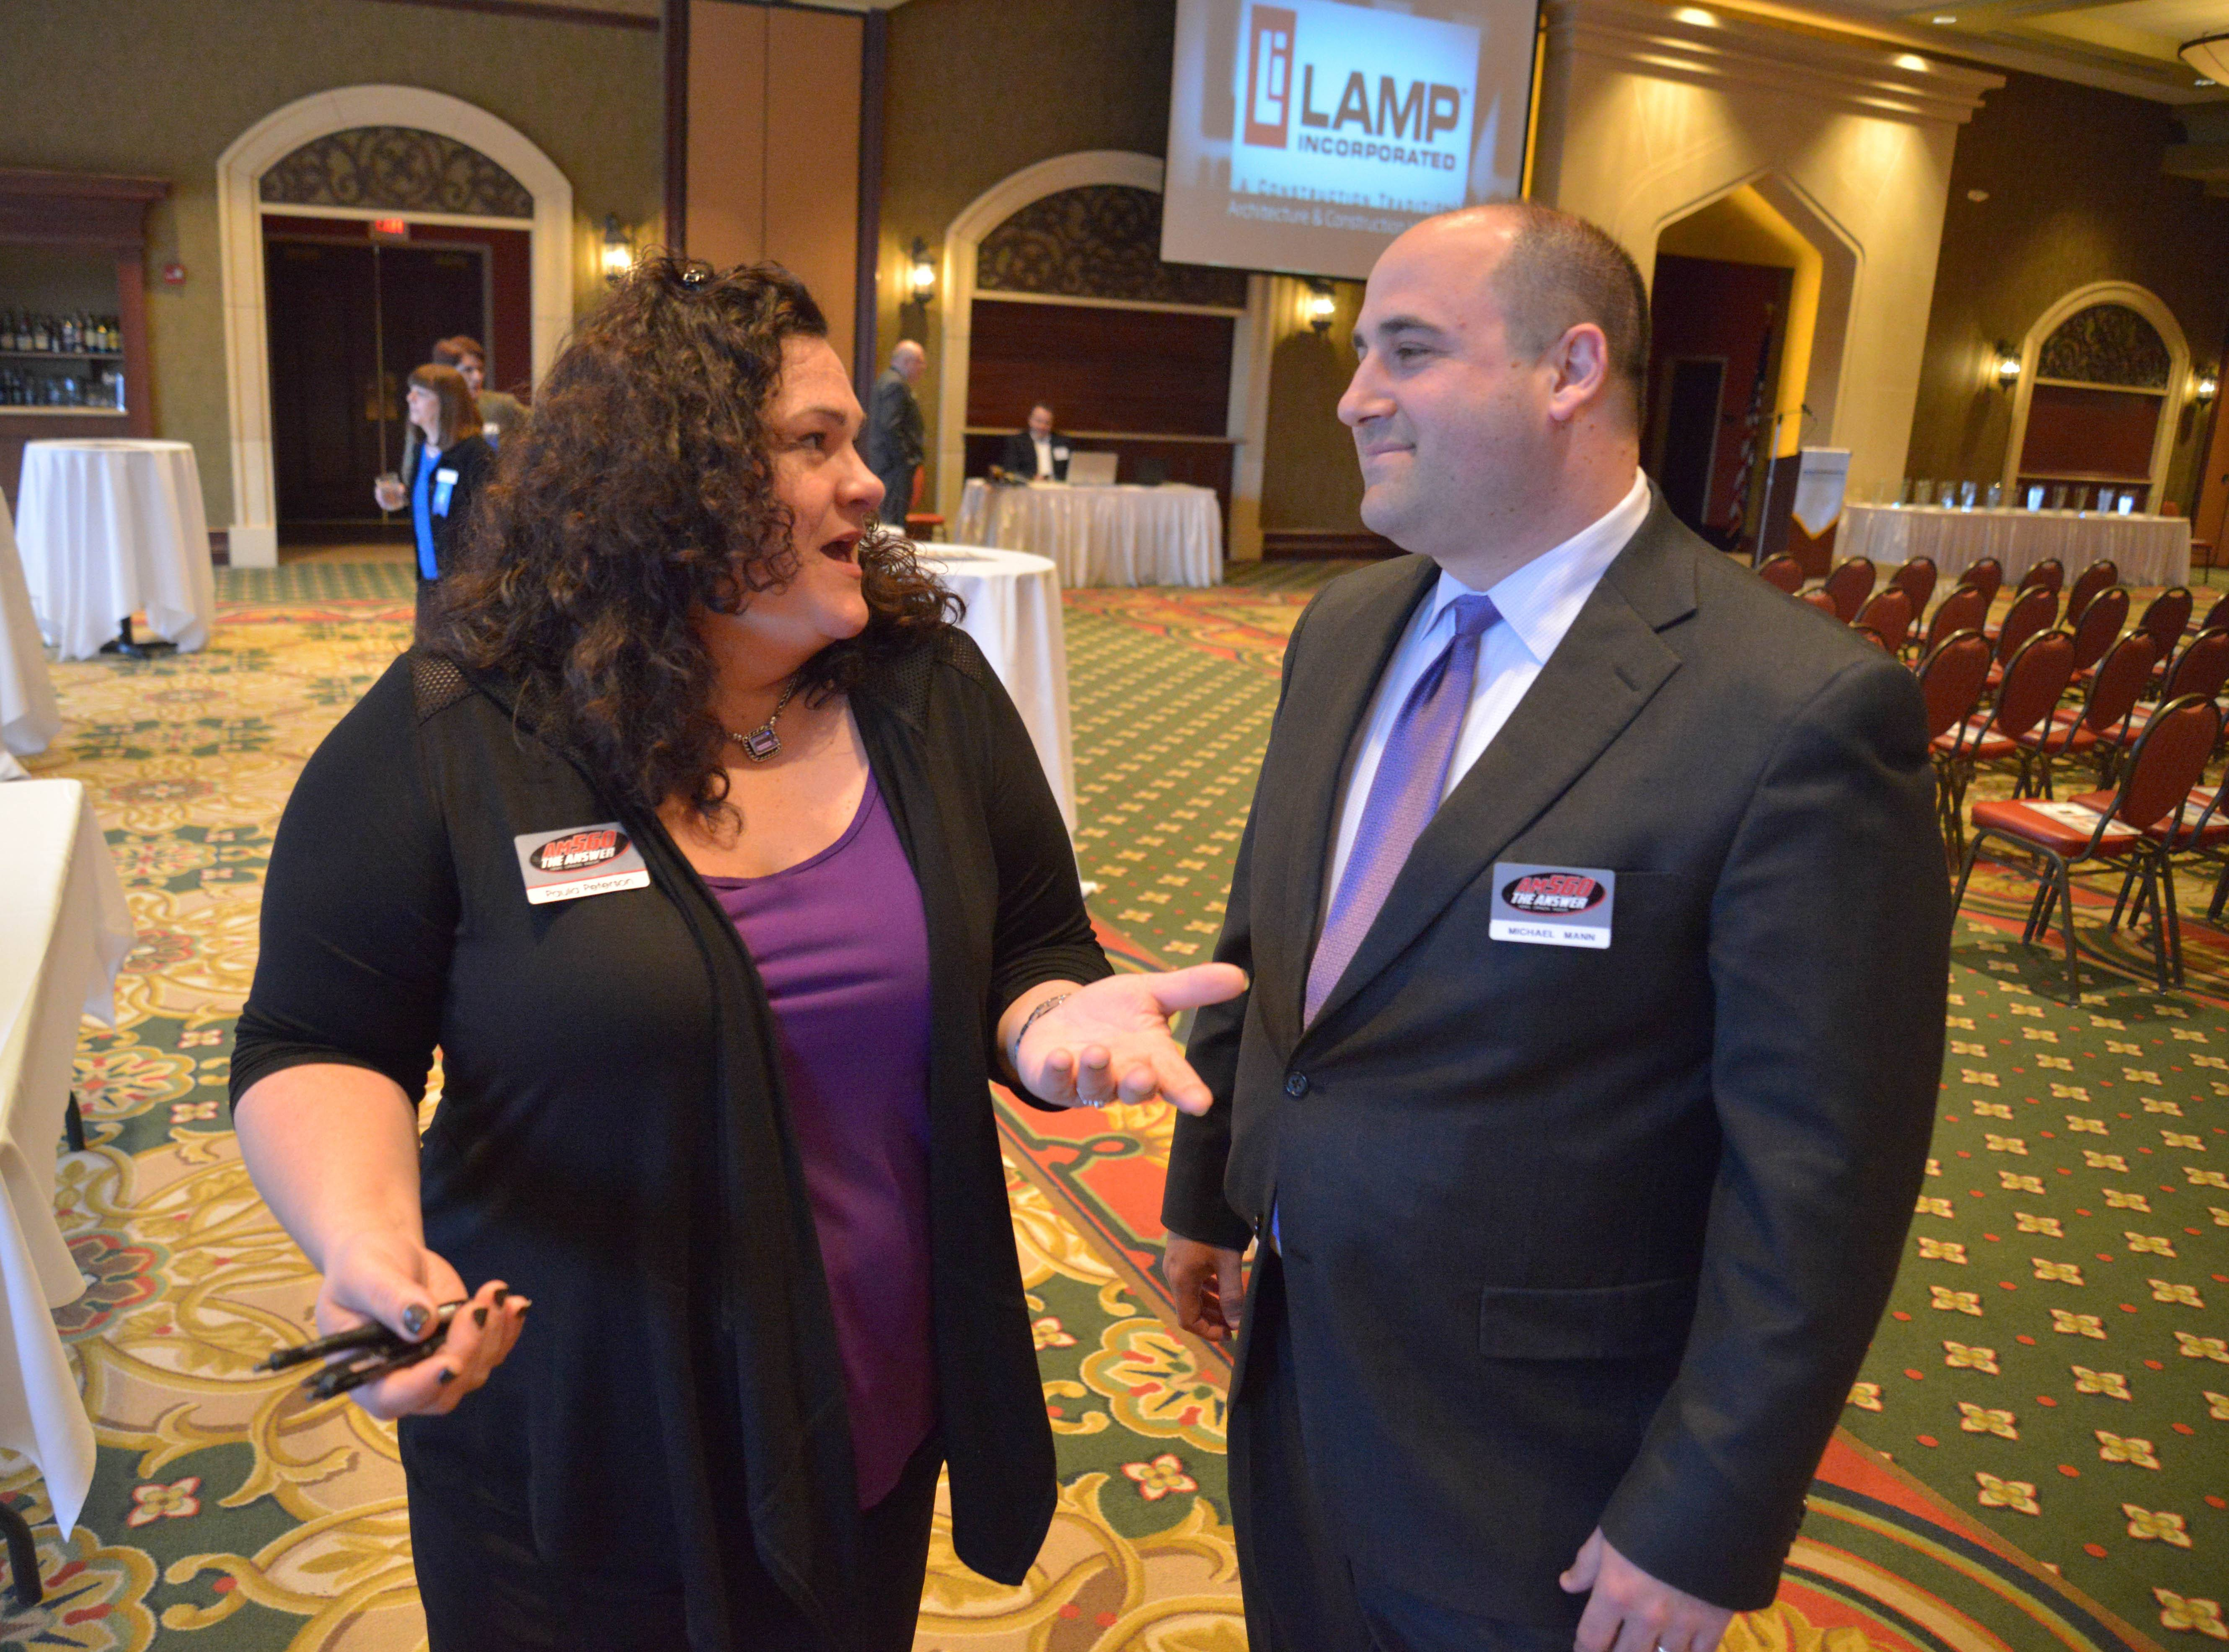 Paula Peterson and Michael Mann of AM 560 The Answer chat during the Daily Herald Business Ledger AABE awards in Addison.